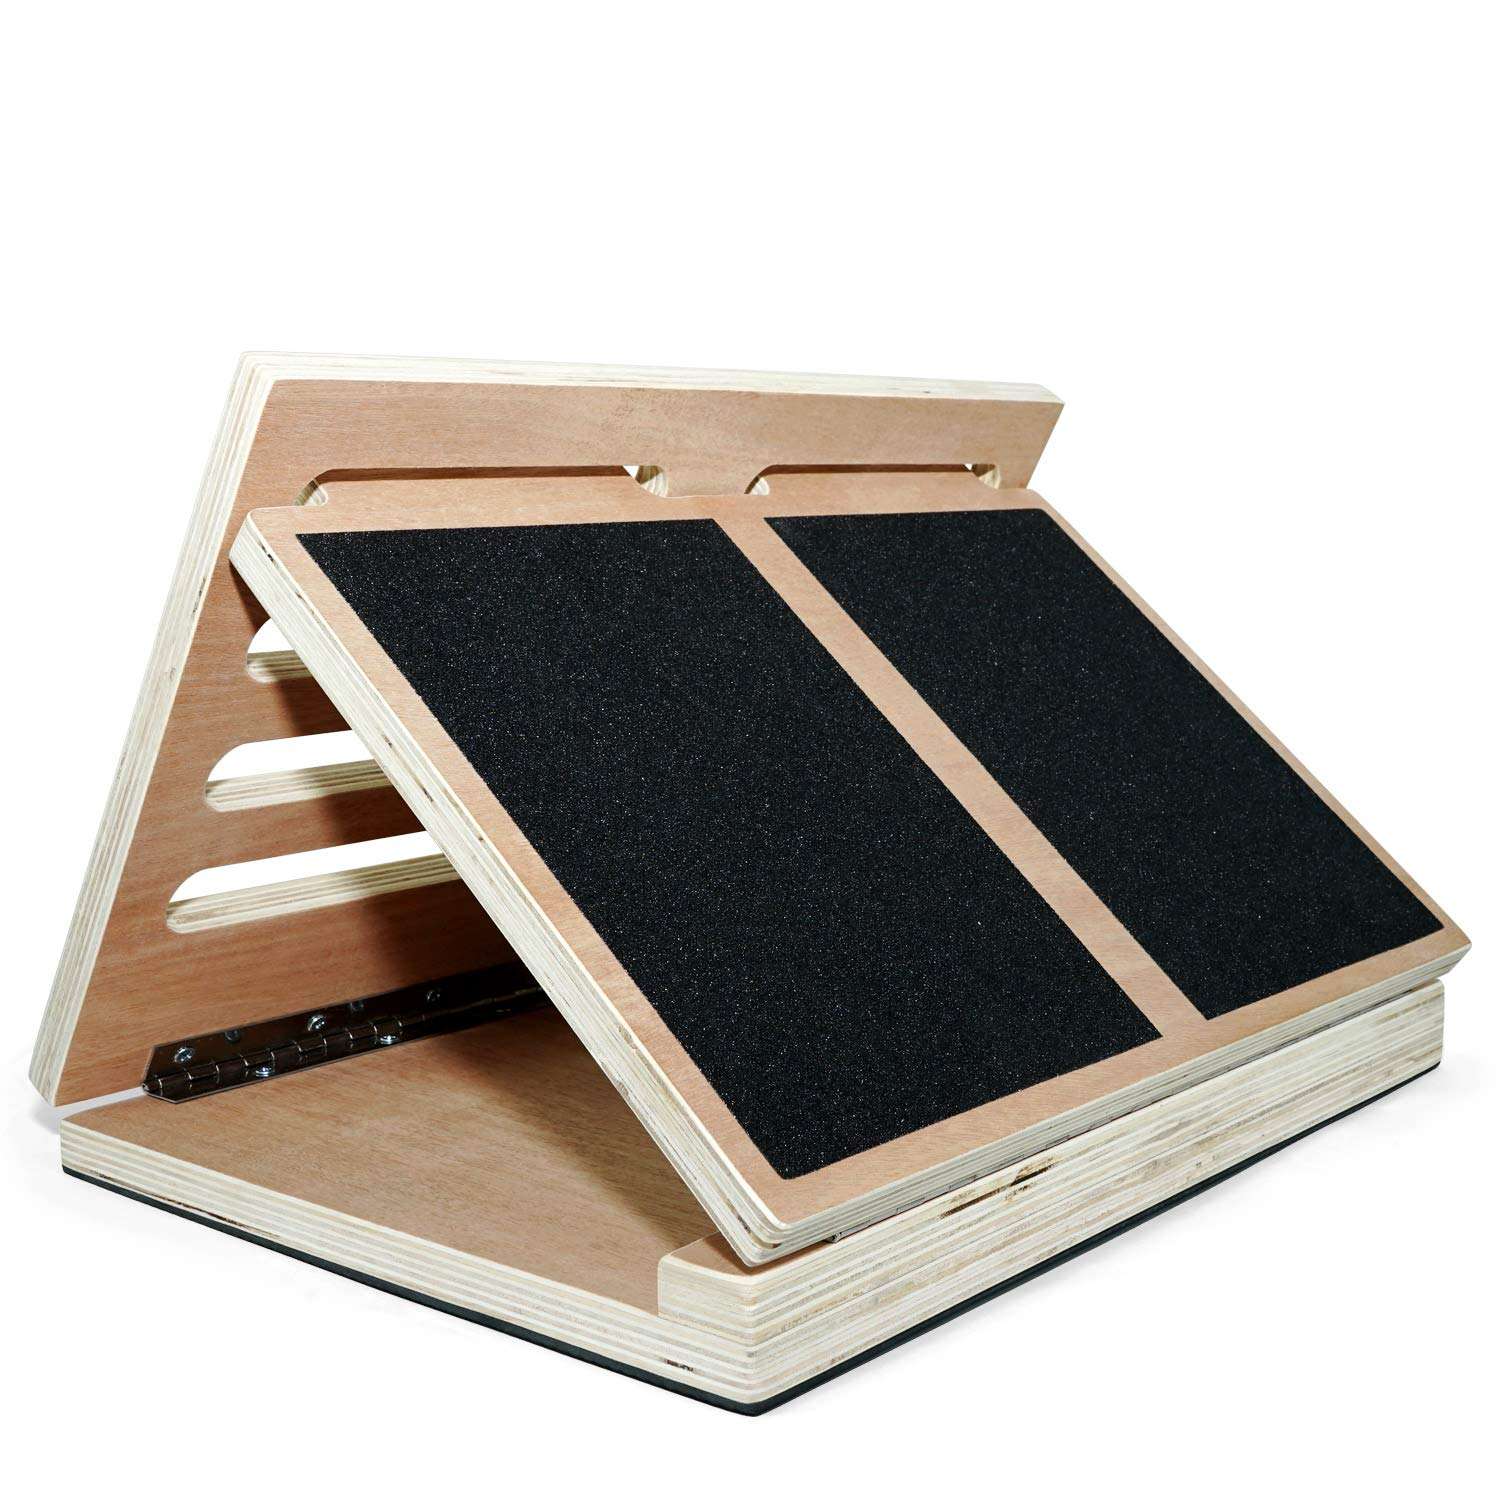 Yes4All Adjustable Wooden Slant Board – Incline Level 10, 20, 30, 35 40 Degree – Support up to 450 lbs